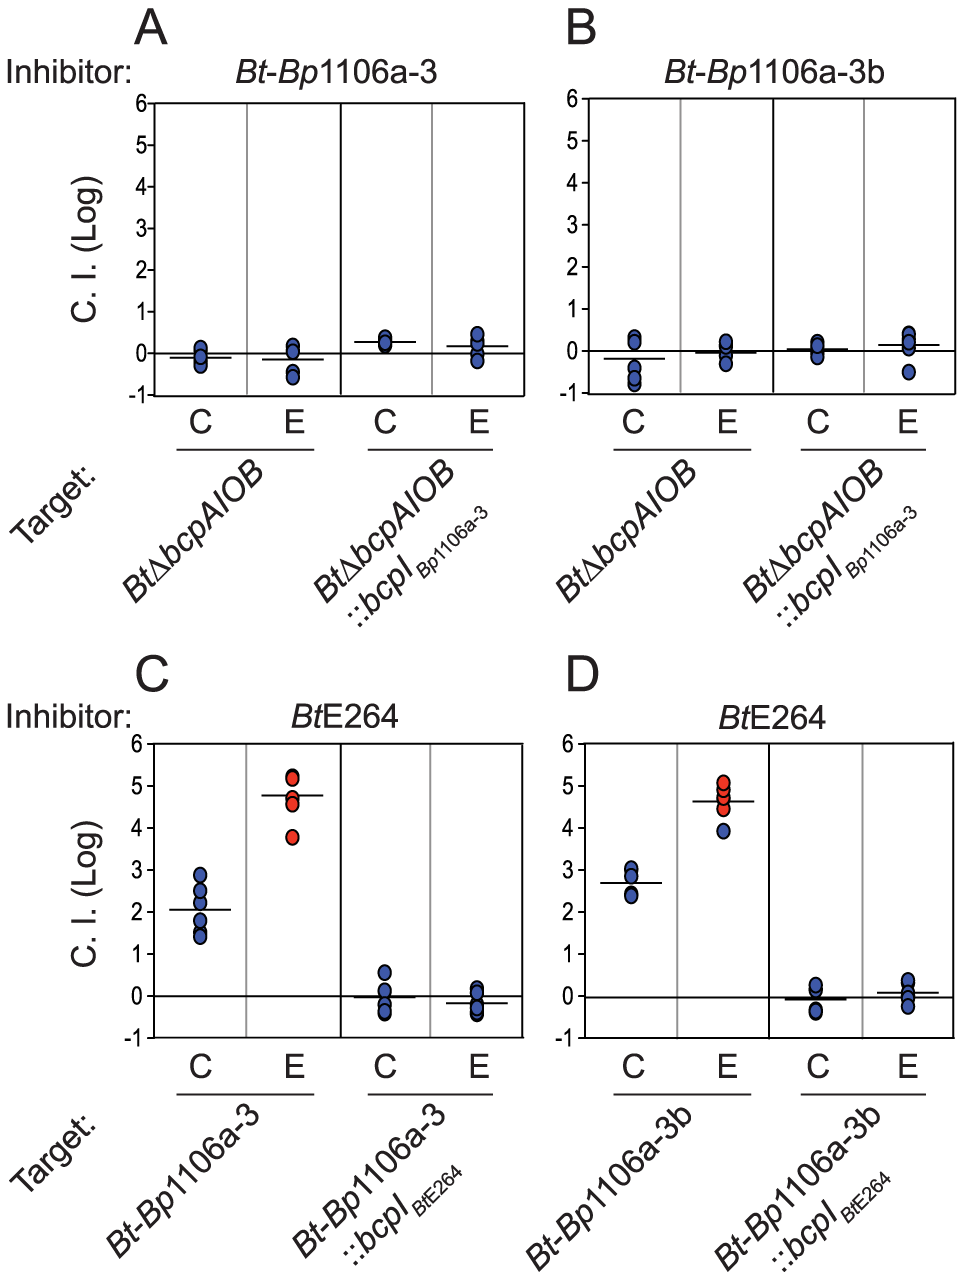 Lack of <i>Bt</i>-<i>Bp</i>1106a-3 and <i>Bt</i>-<i>Bp</i>1106a-3b mediated interbacterial competition.